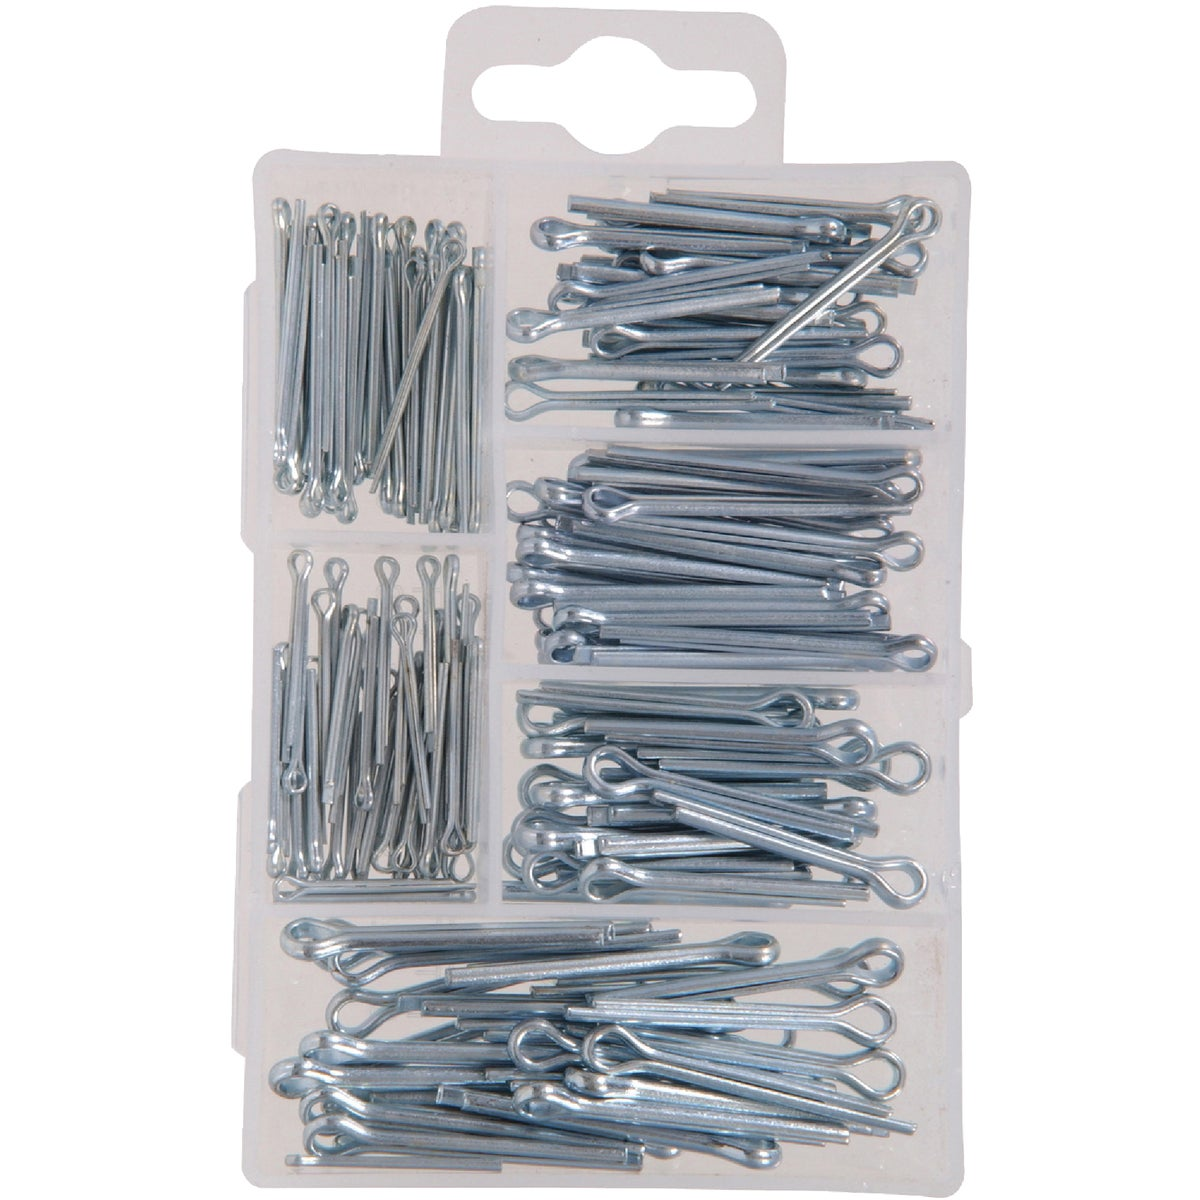 KIT COTTER PIN - 130204 by Hillman Fastener